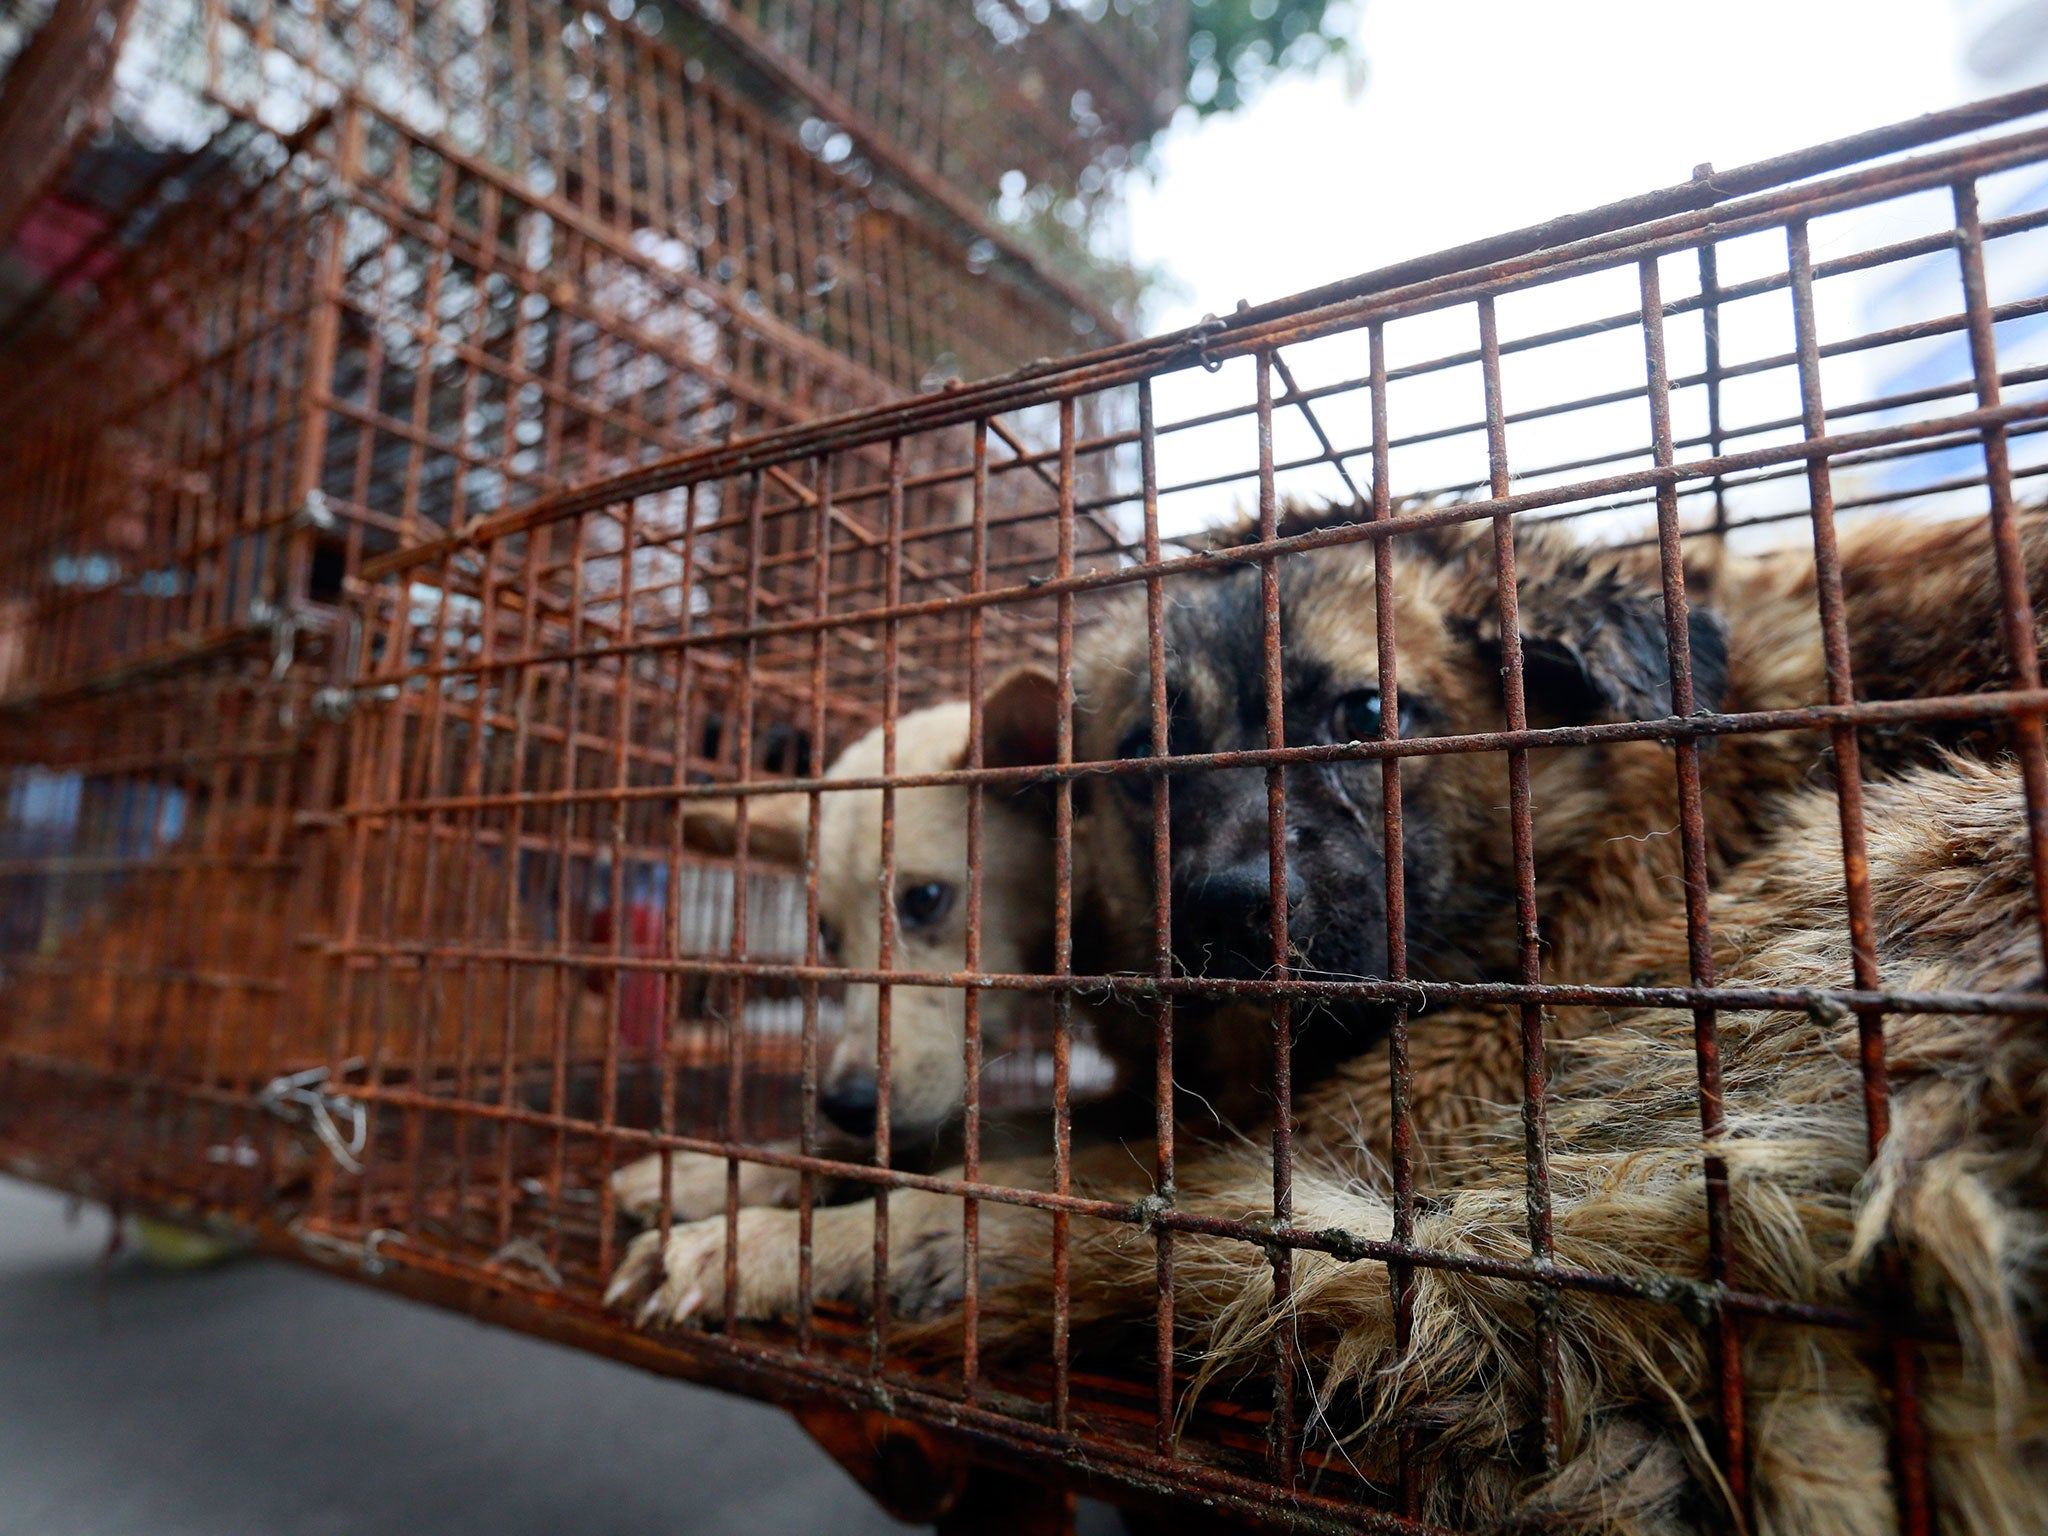 Yulin Dog Meat Festival: Dogs blow-torched alive in footage from